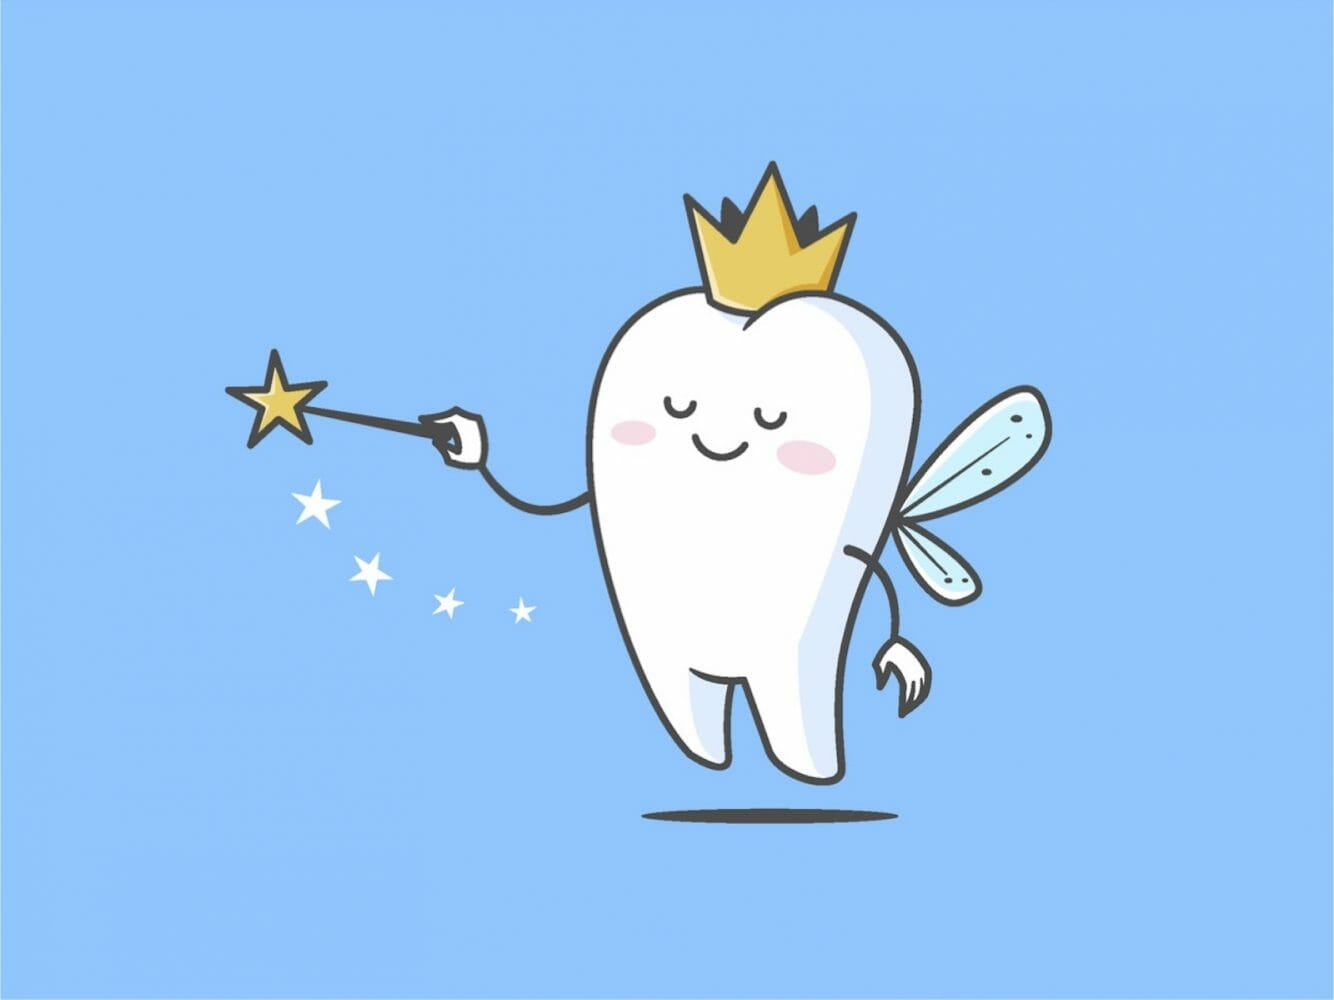 Where Did The Tooth Fairy Come From?